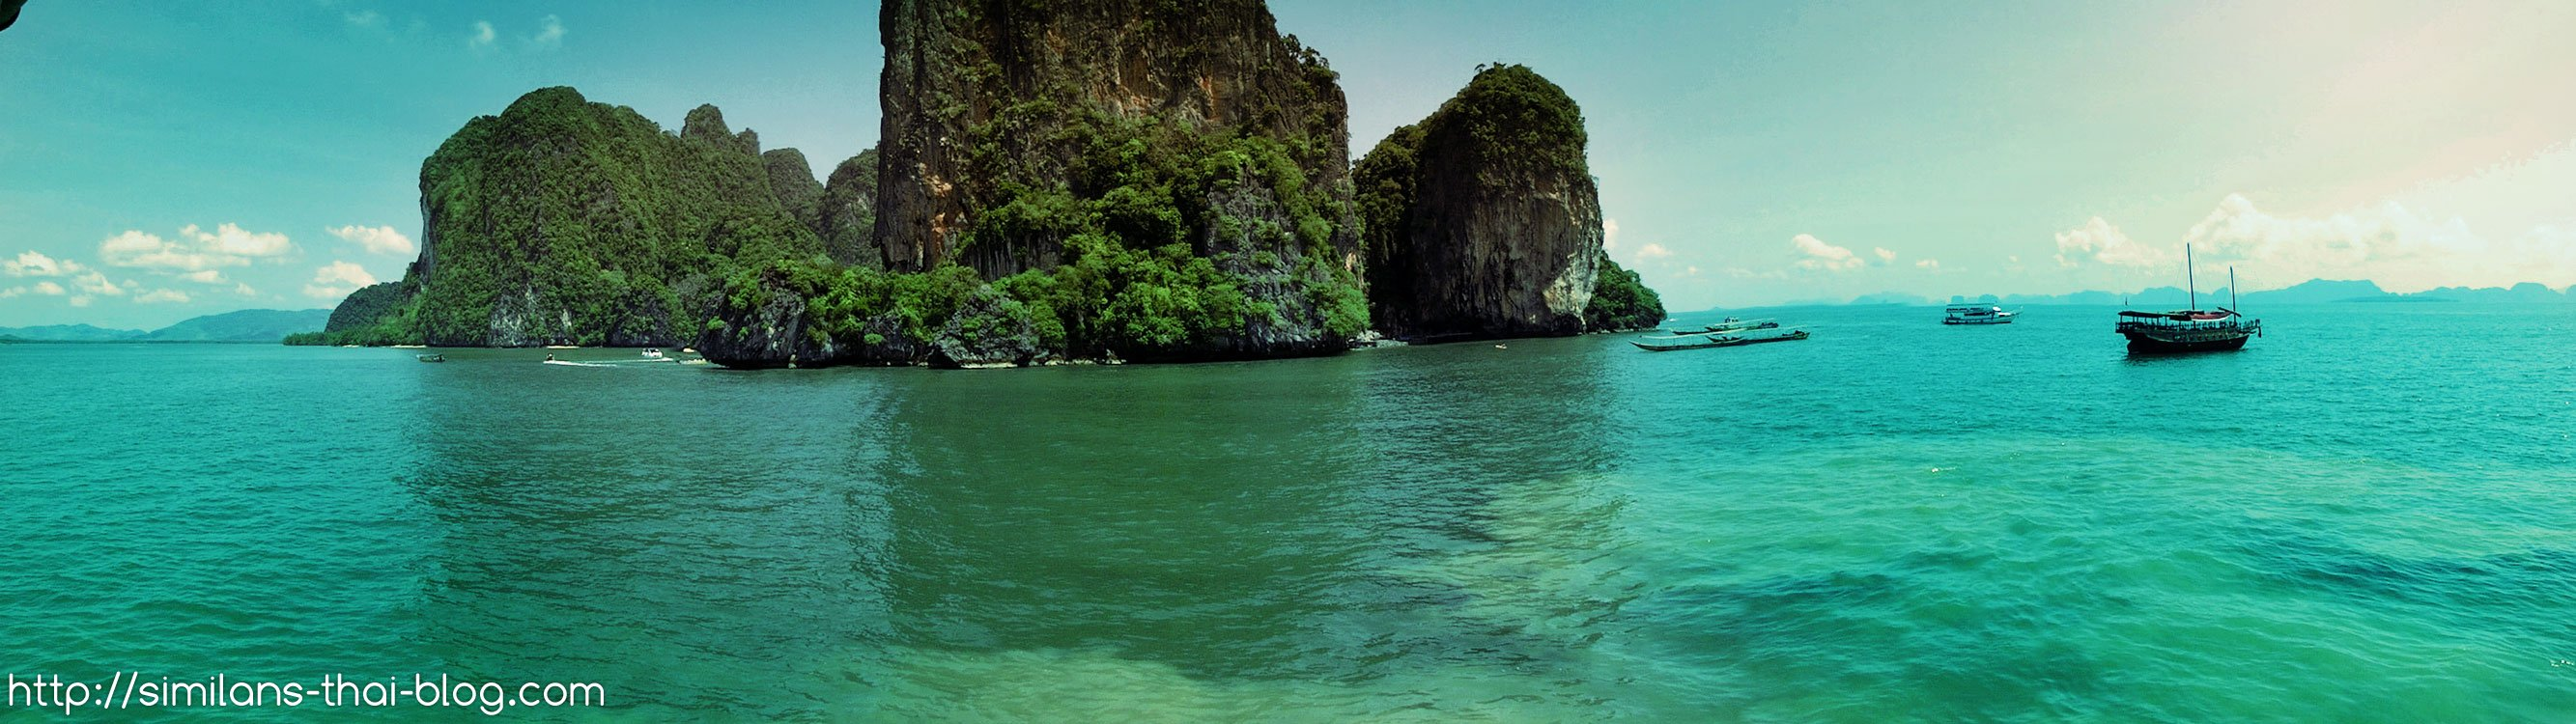 james-bond-island-panorama-02